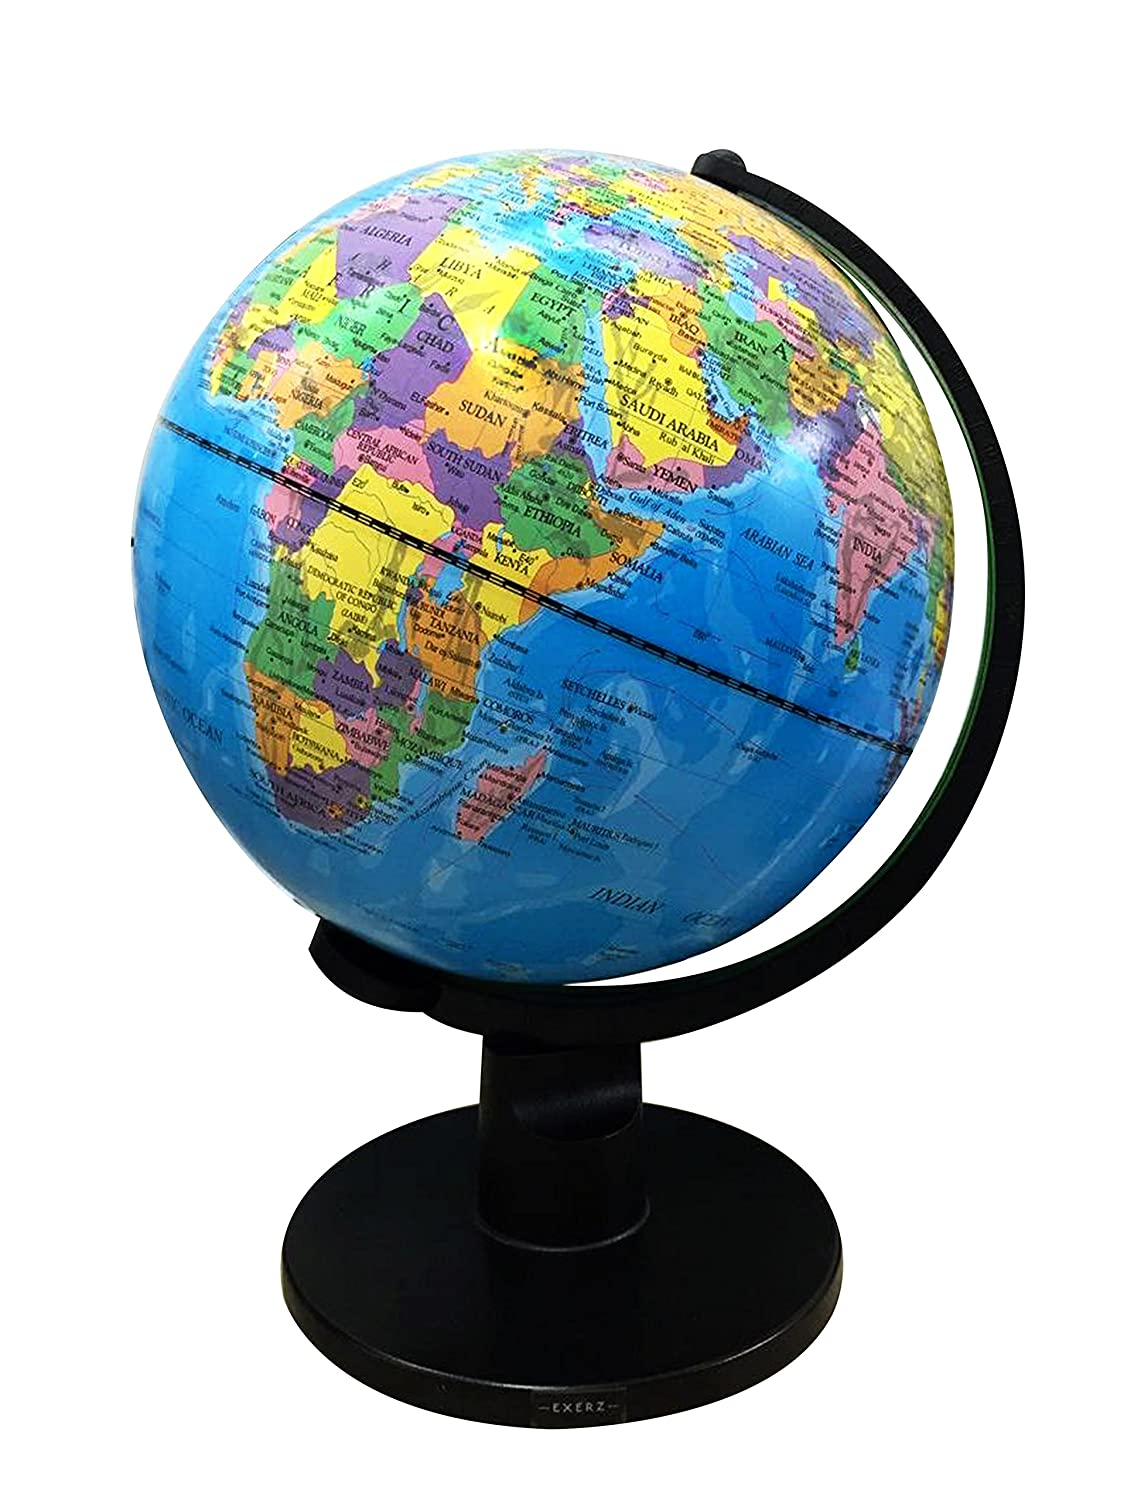 New large 30cm swivel globe world vintage rotating map earth atlas geography ebay - Globo terraqueo amazon ...